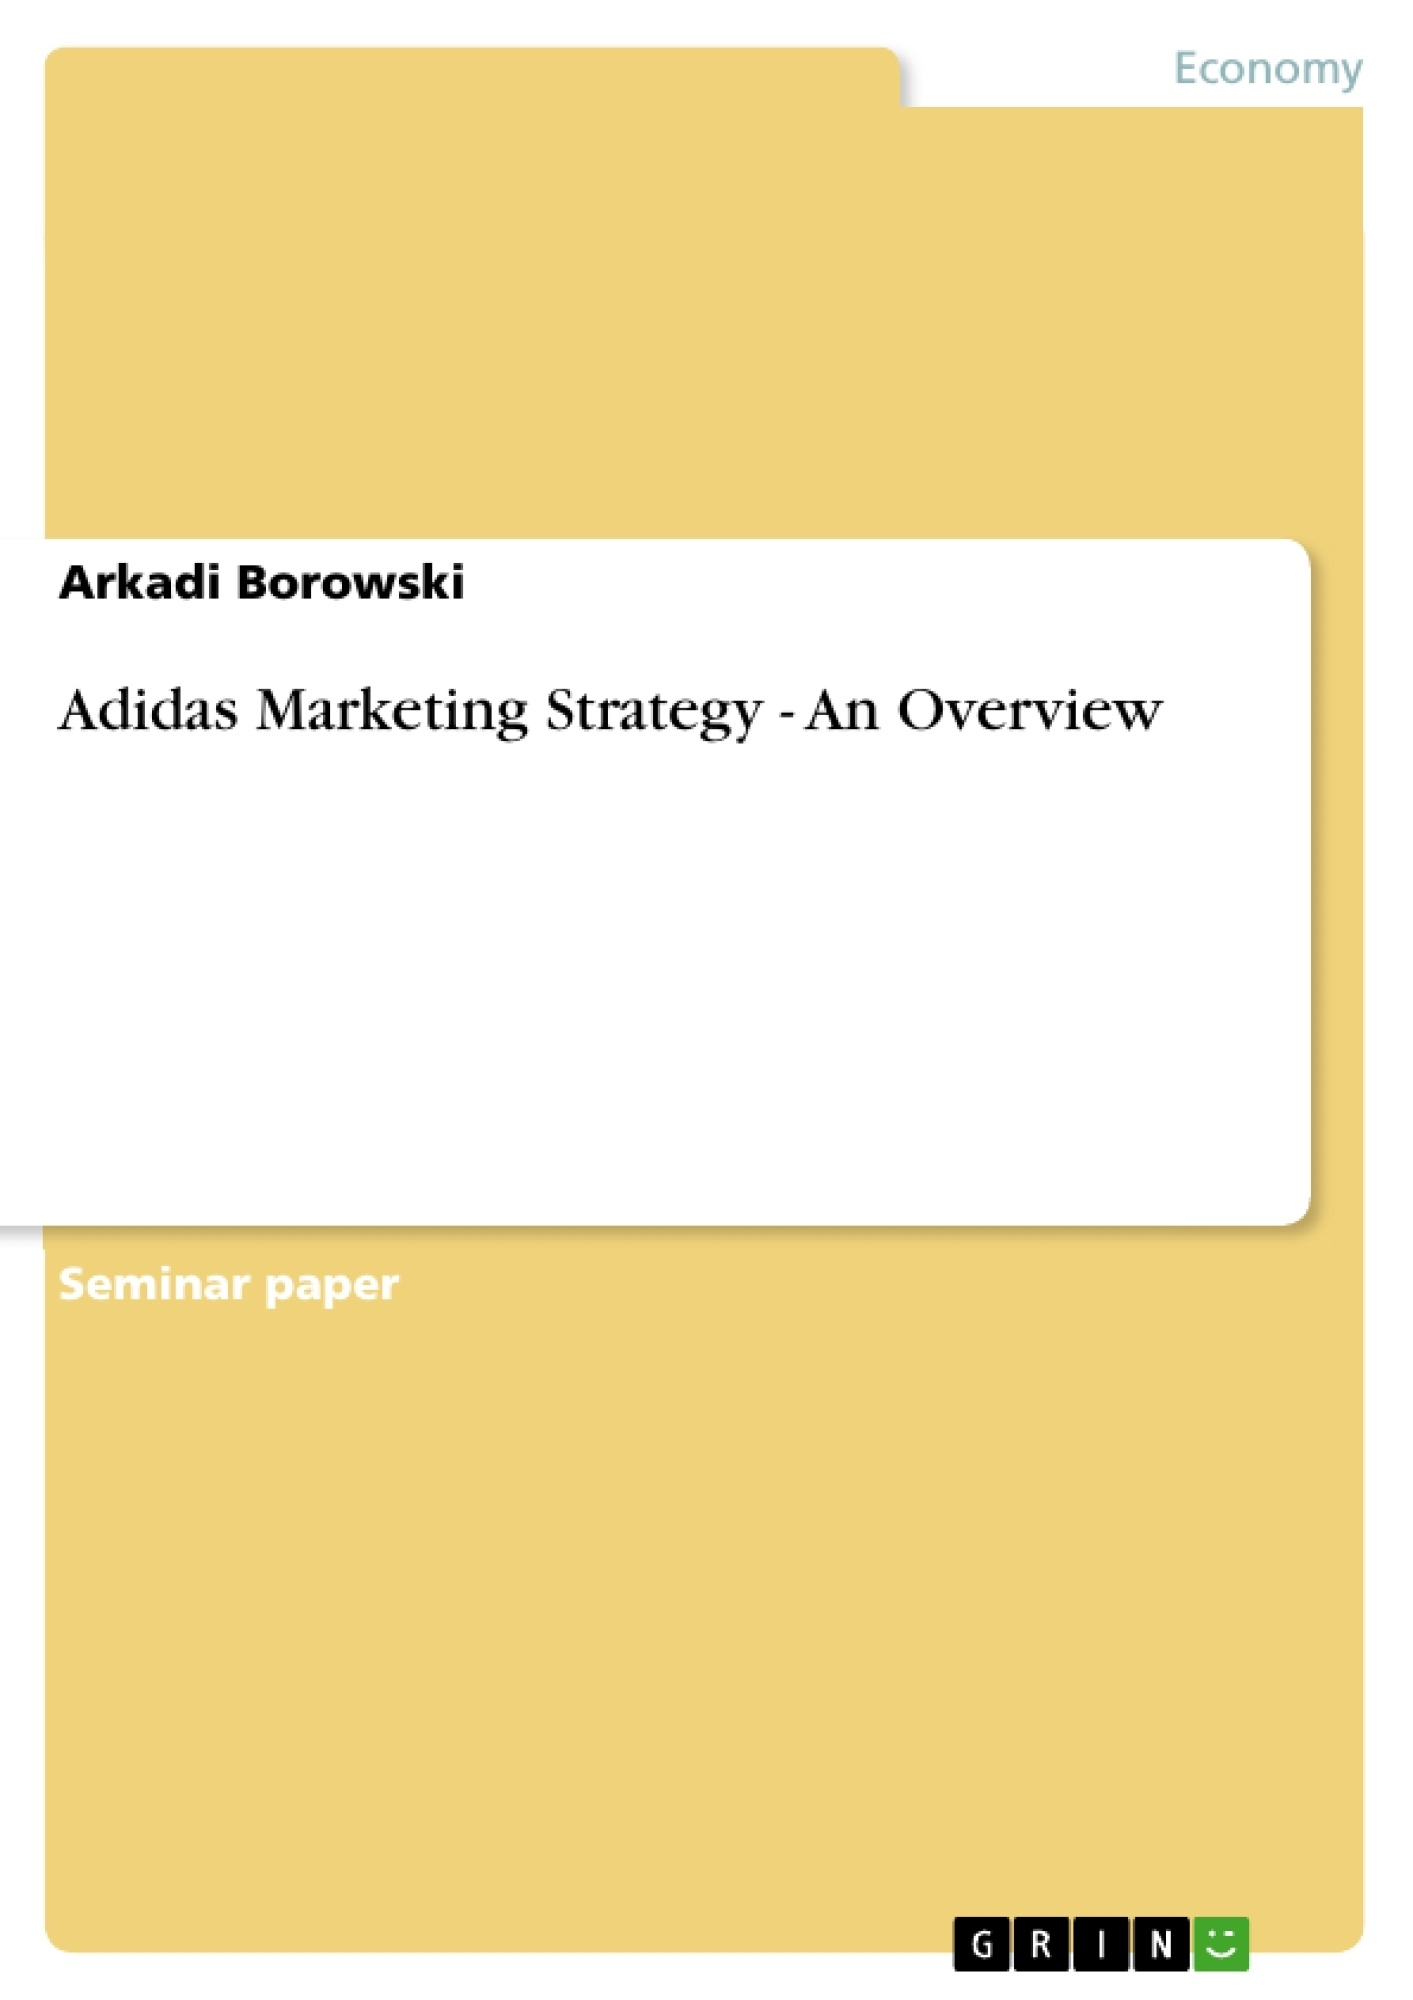 Title: Adidas Marketing Strategy - An Overview